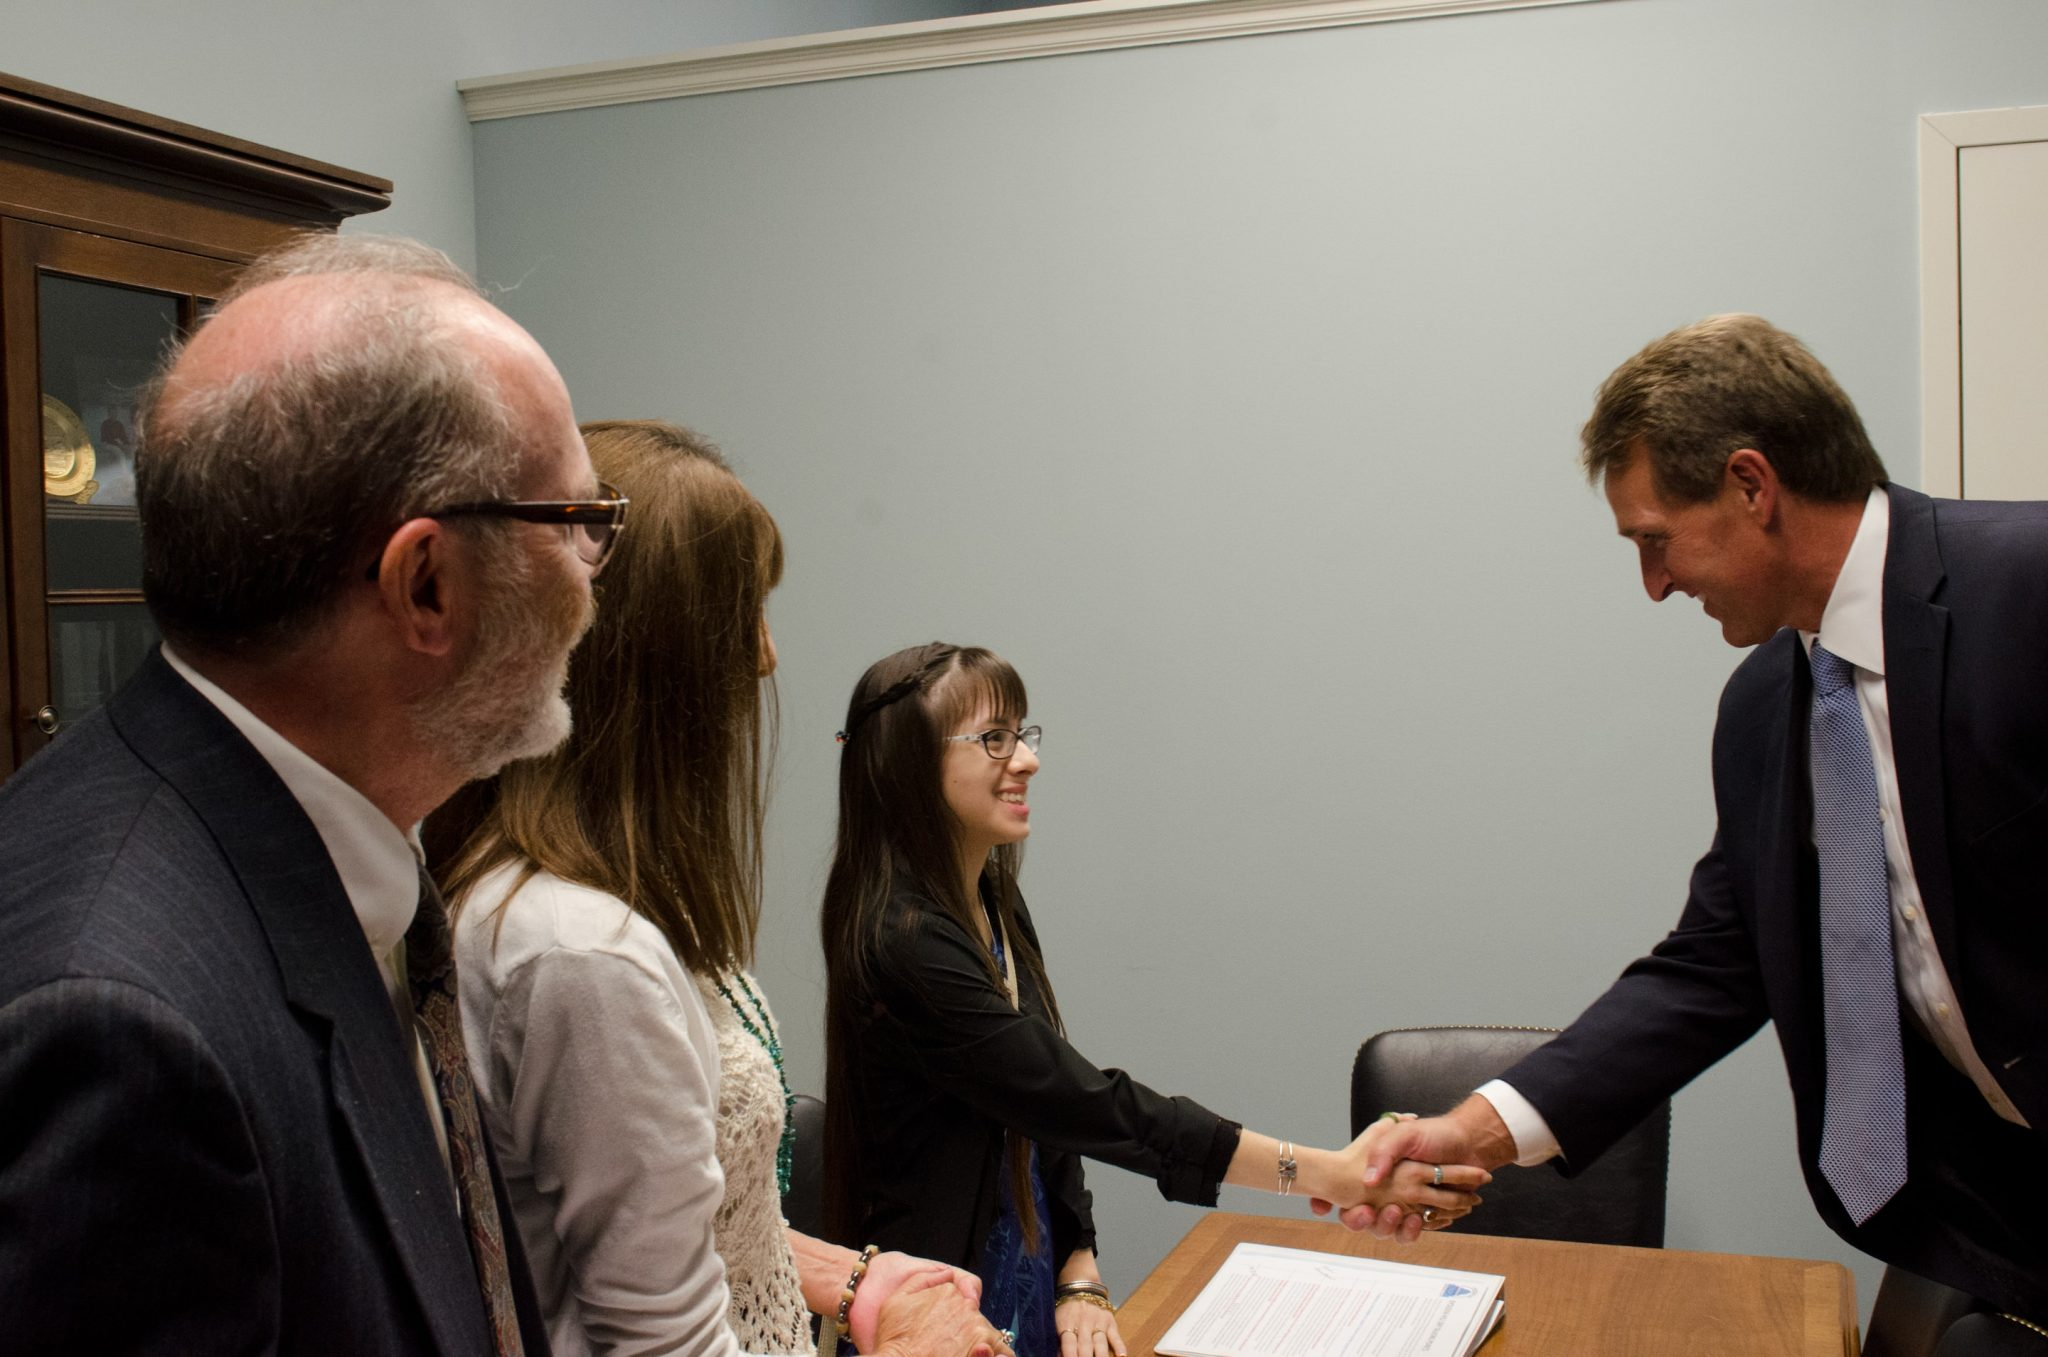 2015 NCLD Anne Ford Scholarship Winner, Savannah, meets with her elected official, Senator Jeff Flake (R-AZ).